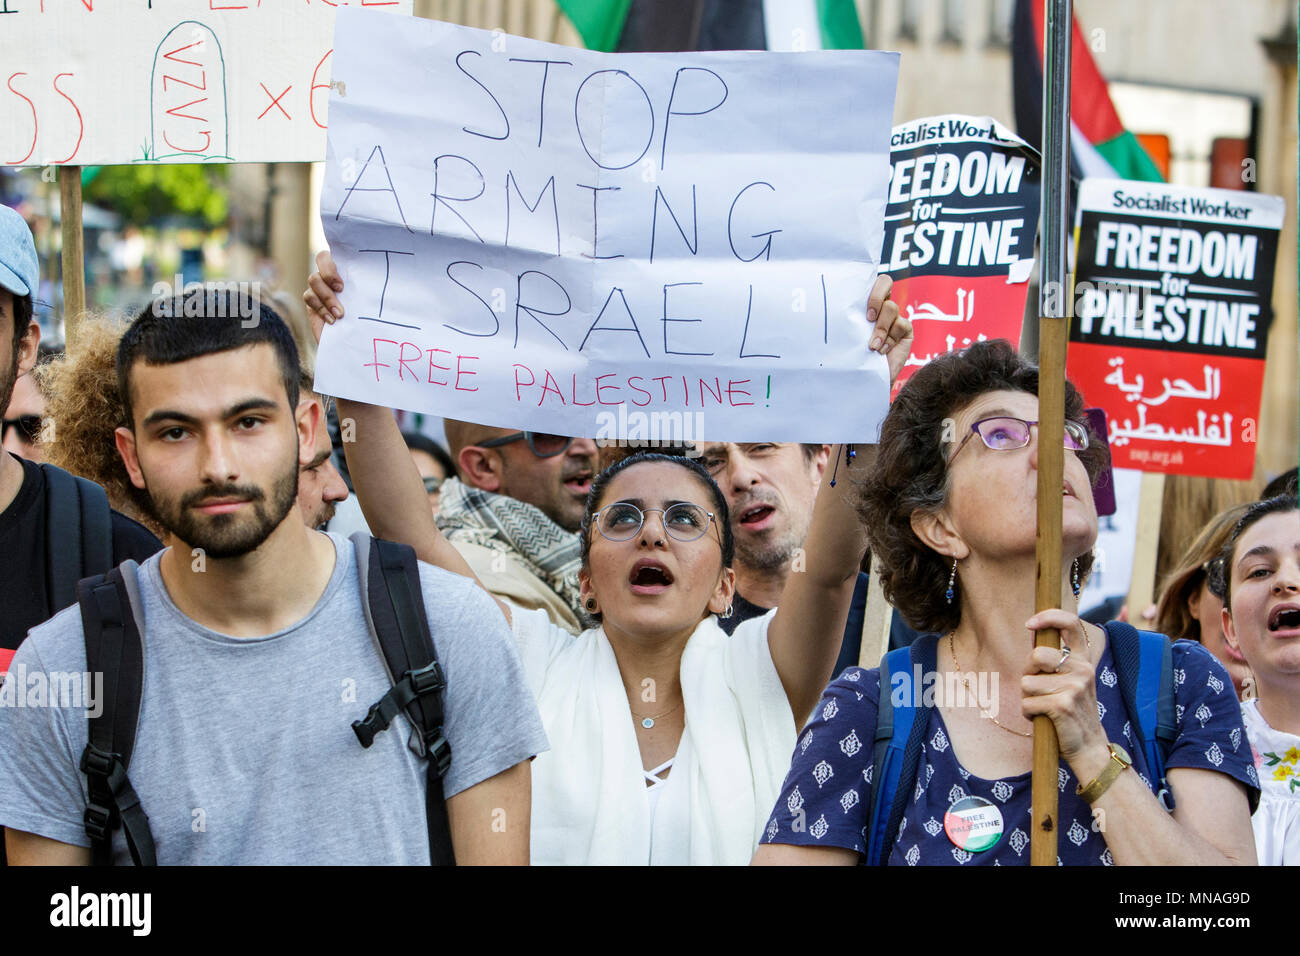 Bristol, UK. 15th May, 2018. Pro-Palestinian demonstrators holding placards and waving Palestinian flags are pictured as they march through Bristol in a protest march to show their solidarity with the Palestinian people. The protest march and rally was held to allow people to show their support and solidarity with the Palestinian people after 70 Years of Nakba and to protest about Israel's recent actions in Gaza - Stock Image